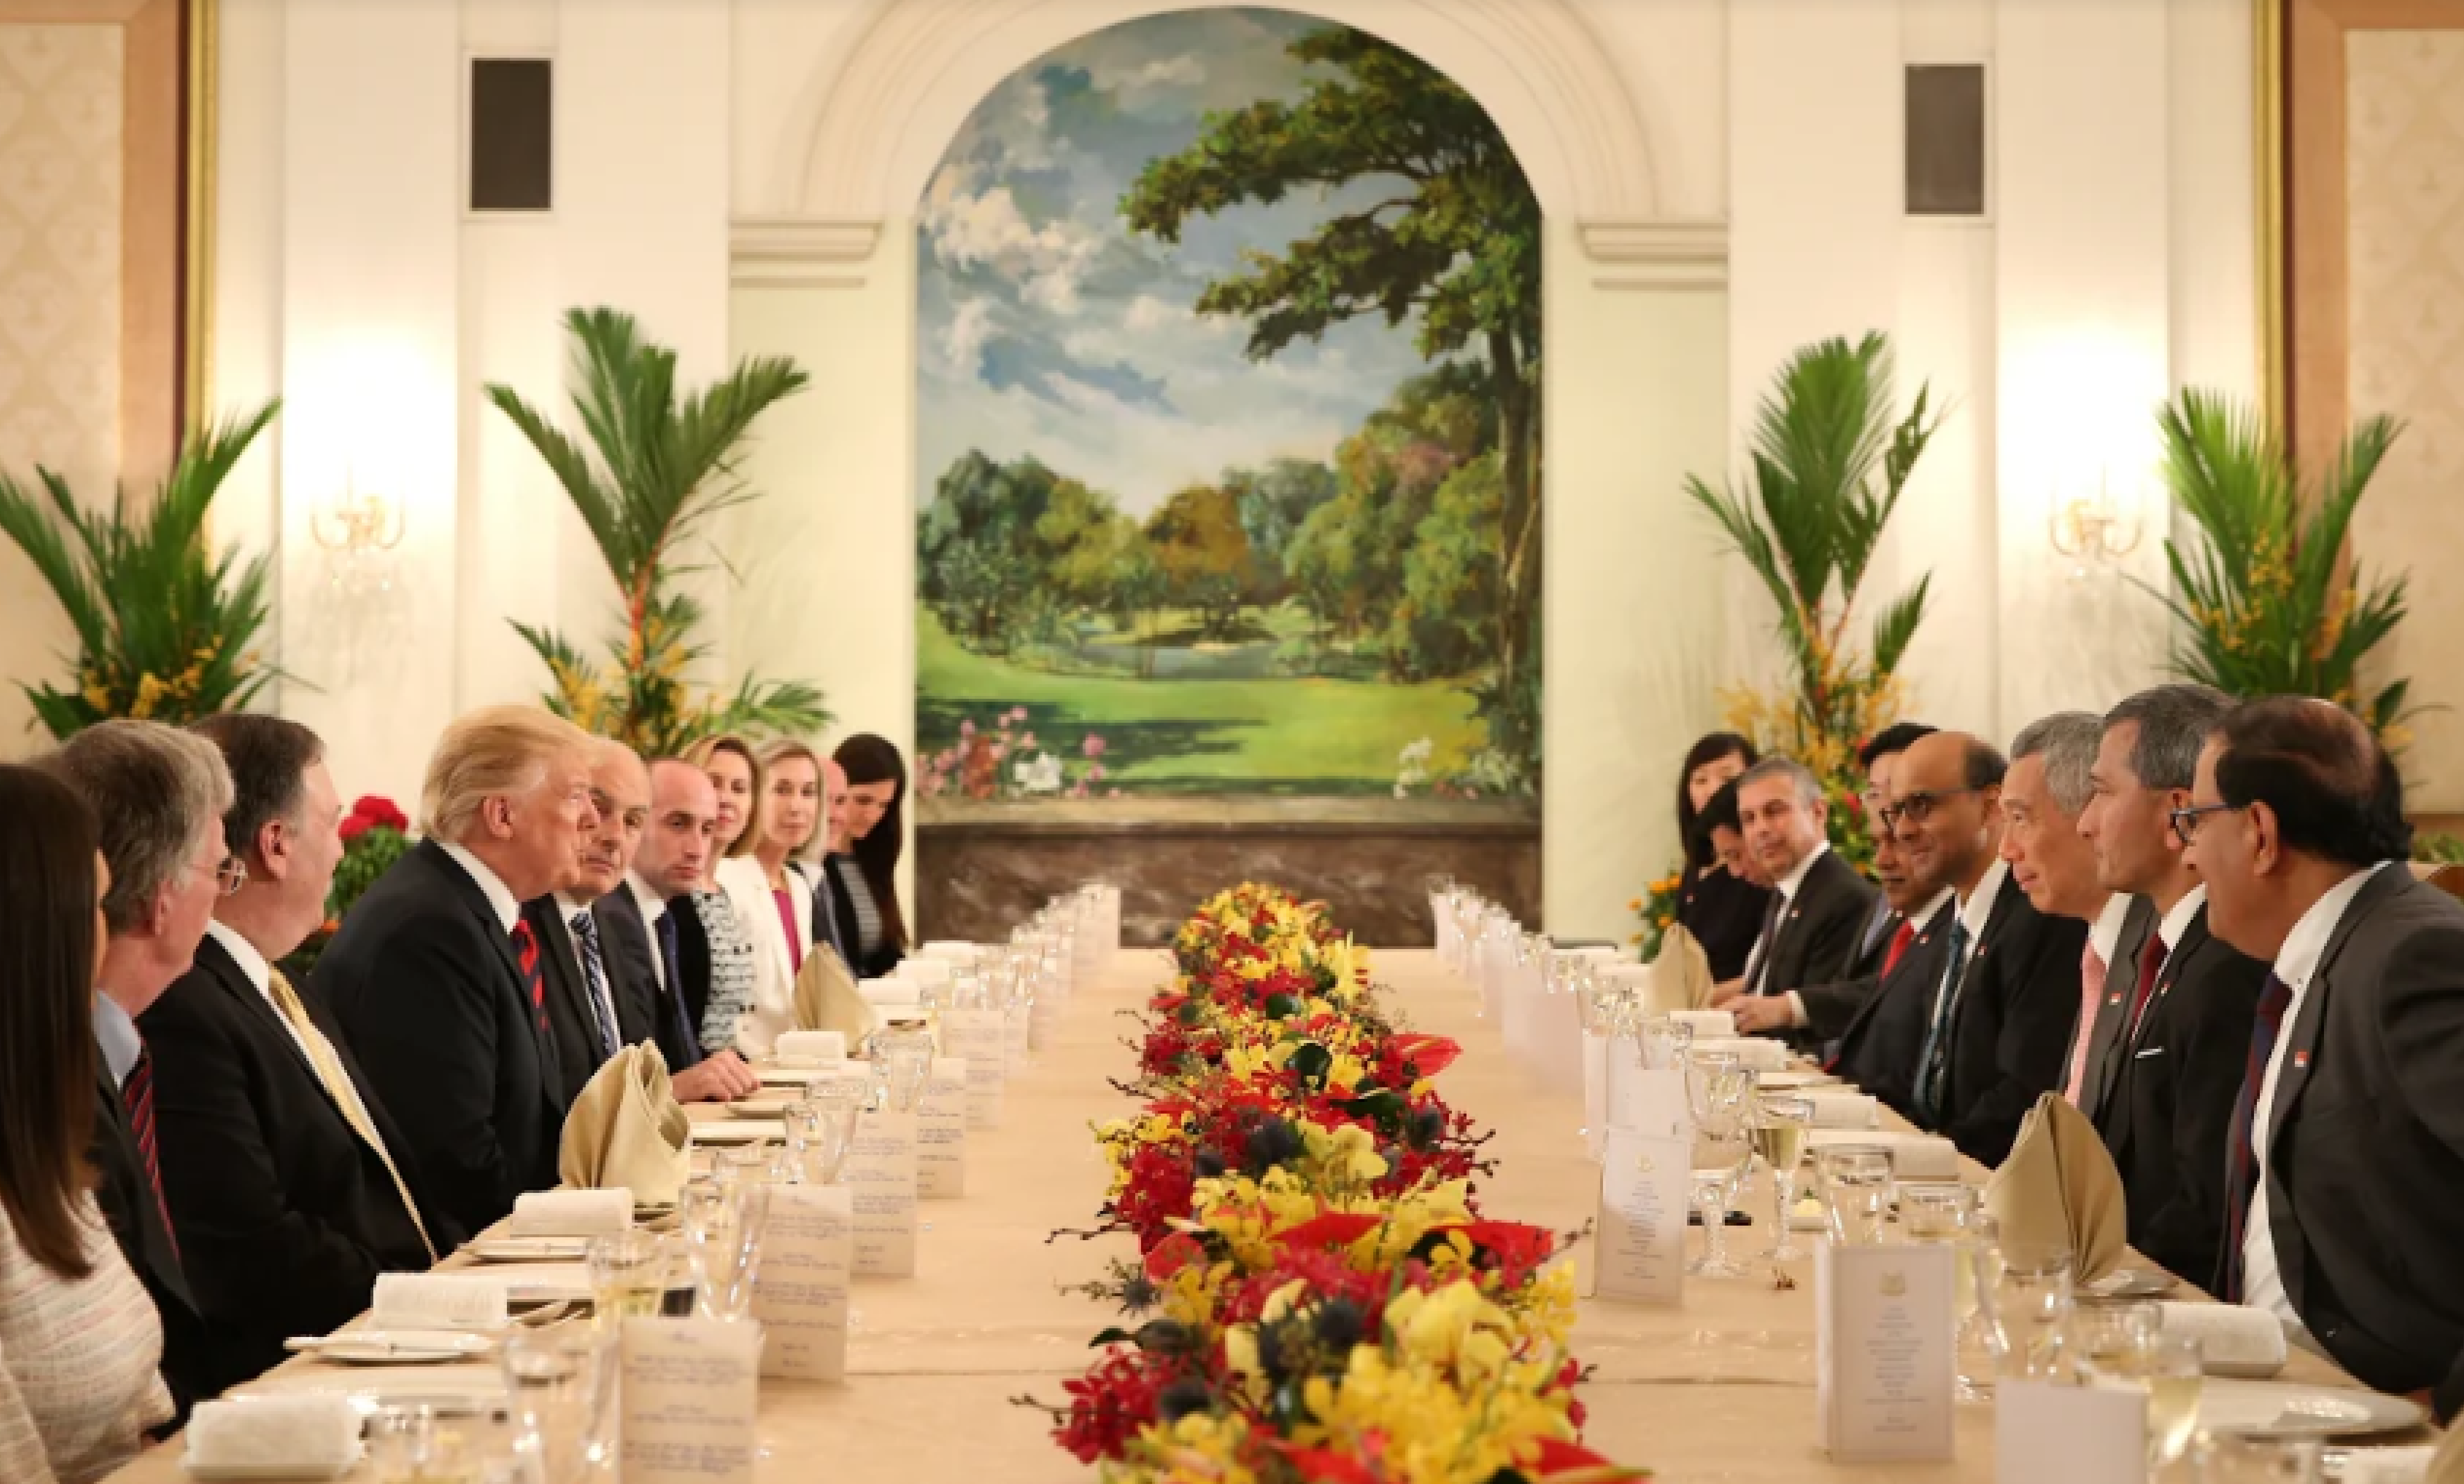 President Trump thanked Prime Minister Lee for Singapore's hosting of the US-Democratic People's Republic of Korea (DPRK) Summit.